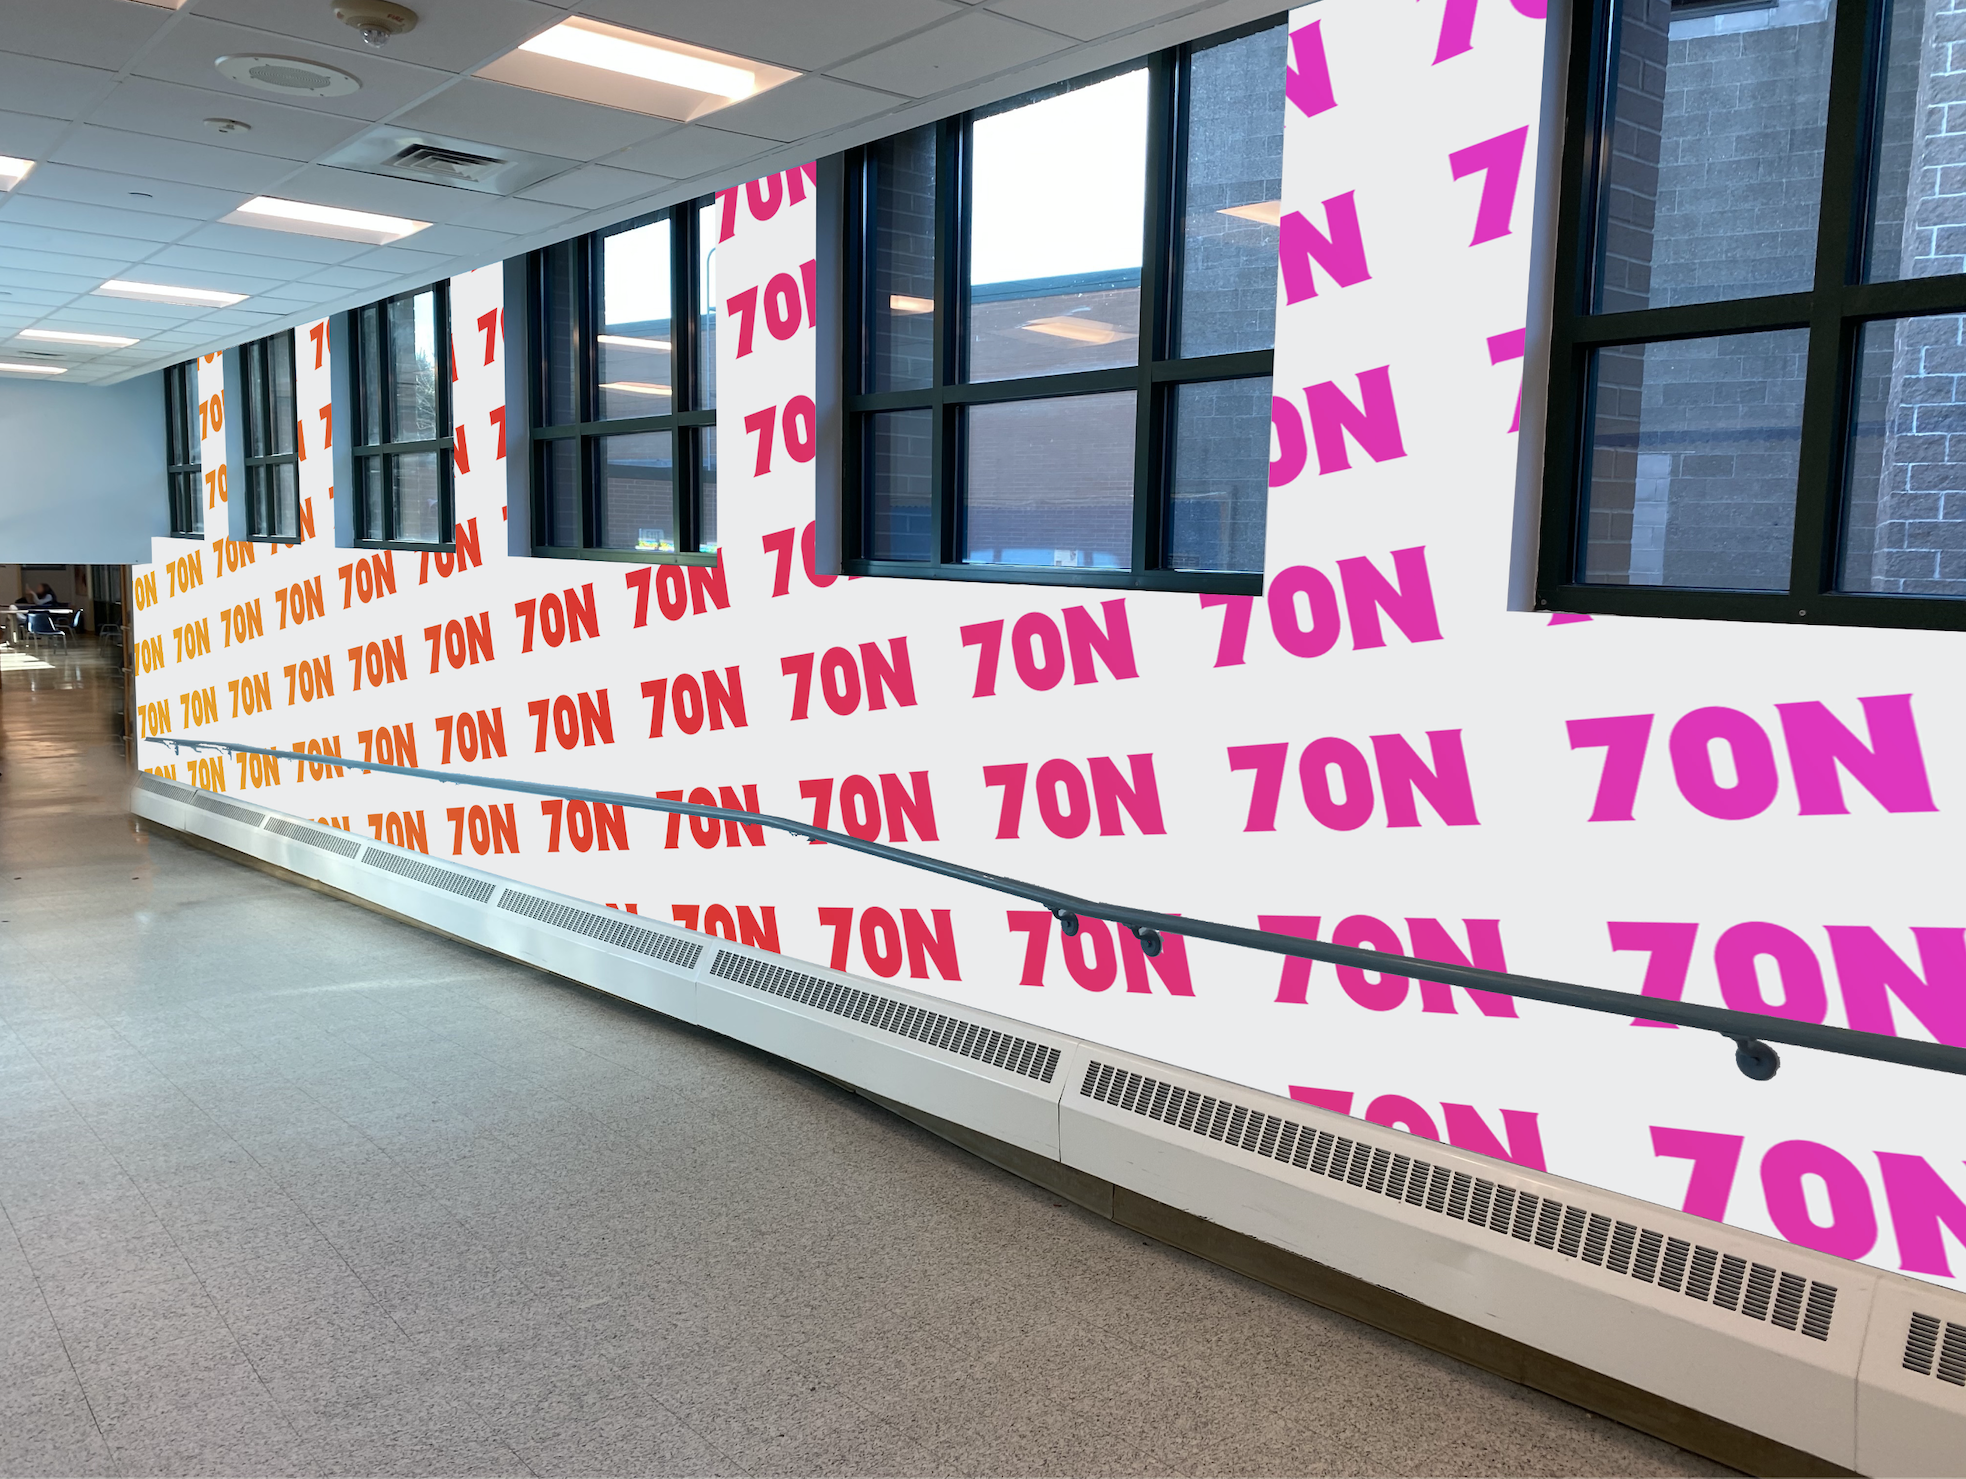 A conceptual full-wall wrap. The 70 North logo is tiled down the walls of a long corridor.